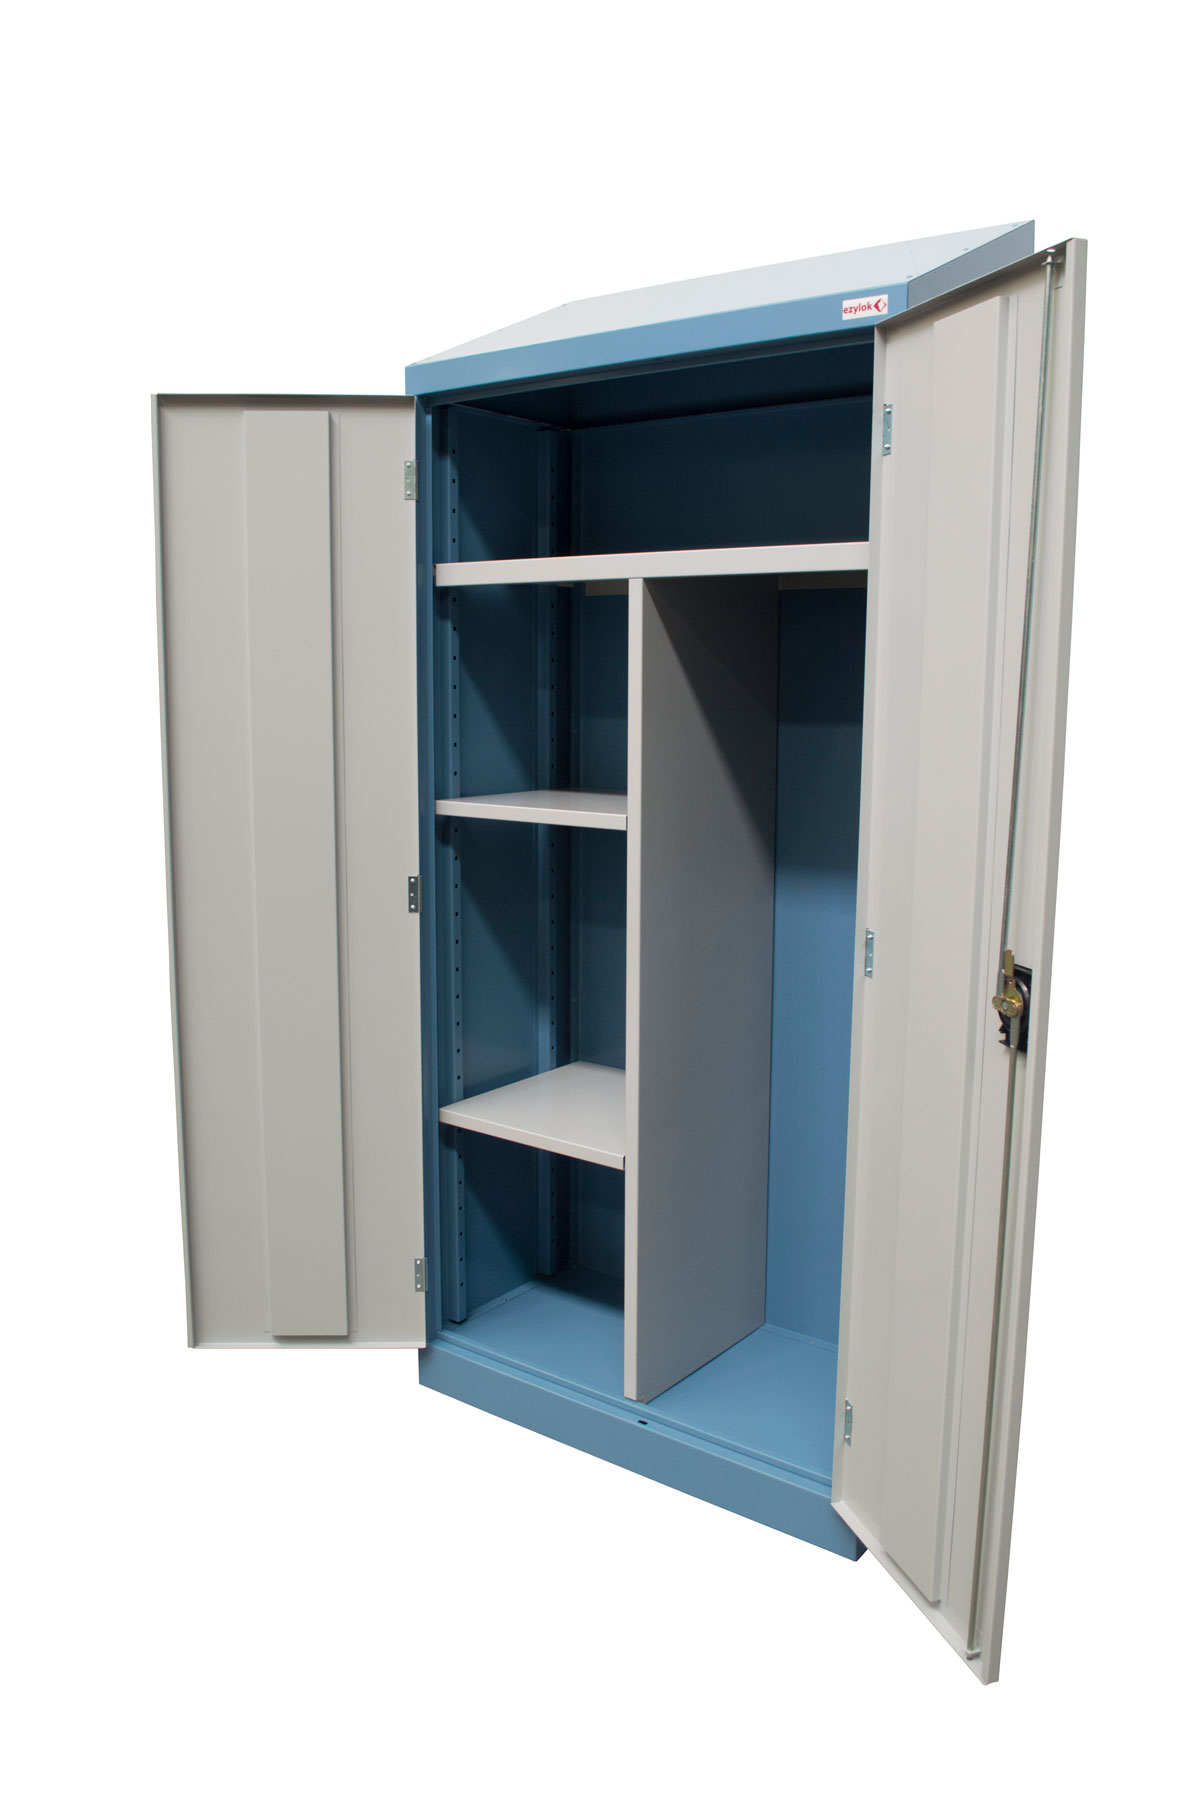 822004-slope-top-implement-cupboard-open-angle-right.jpg